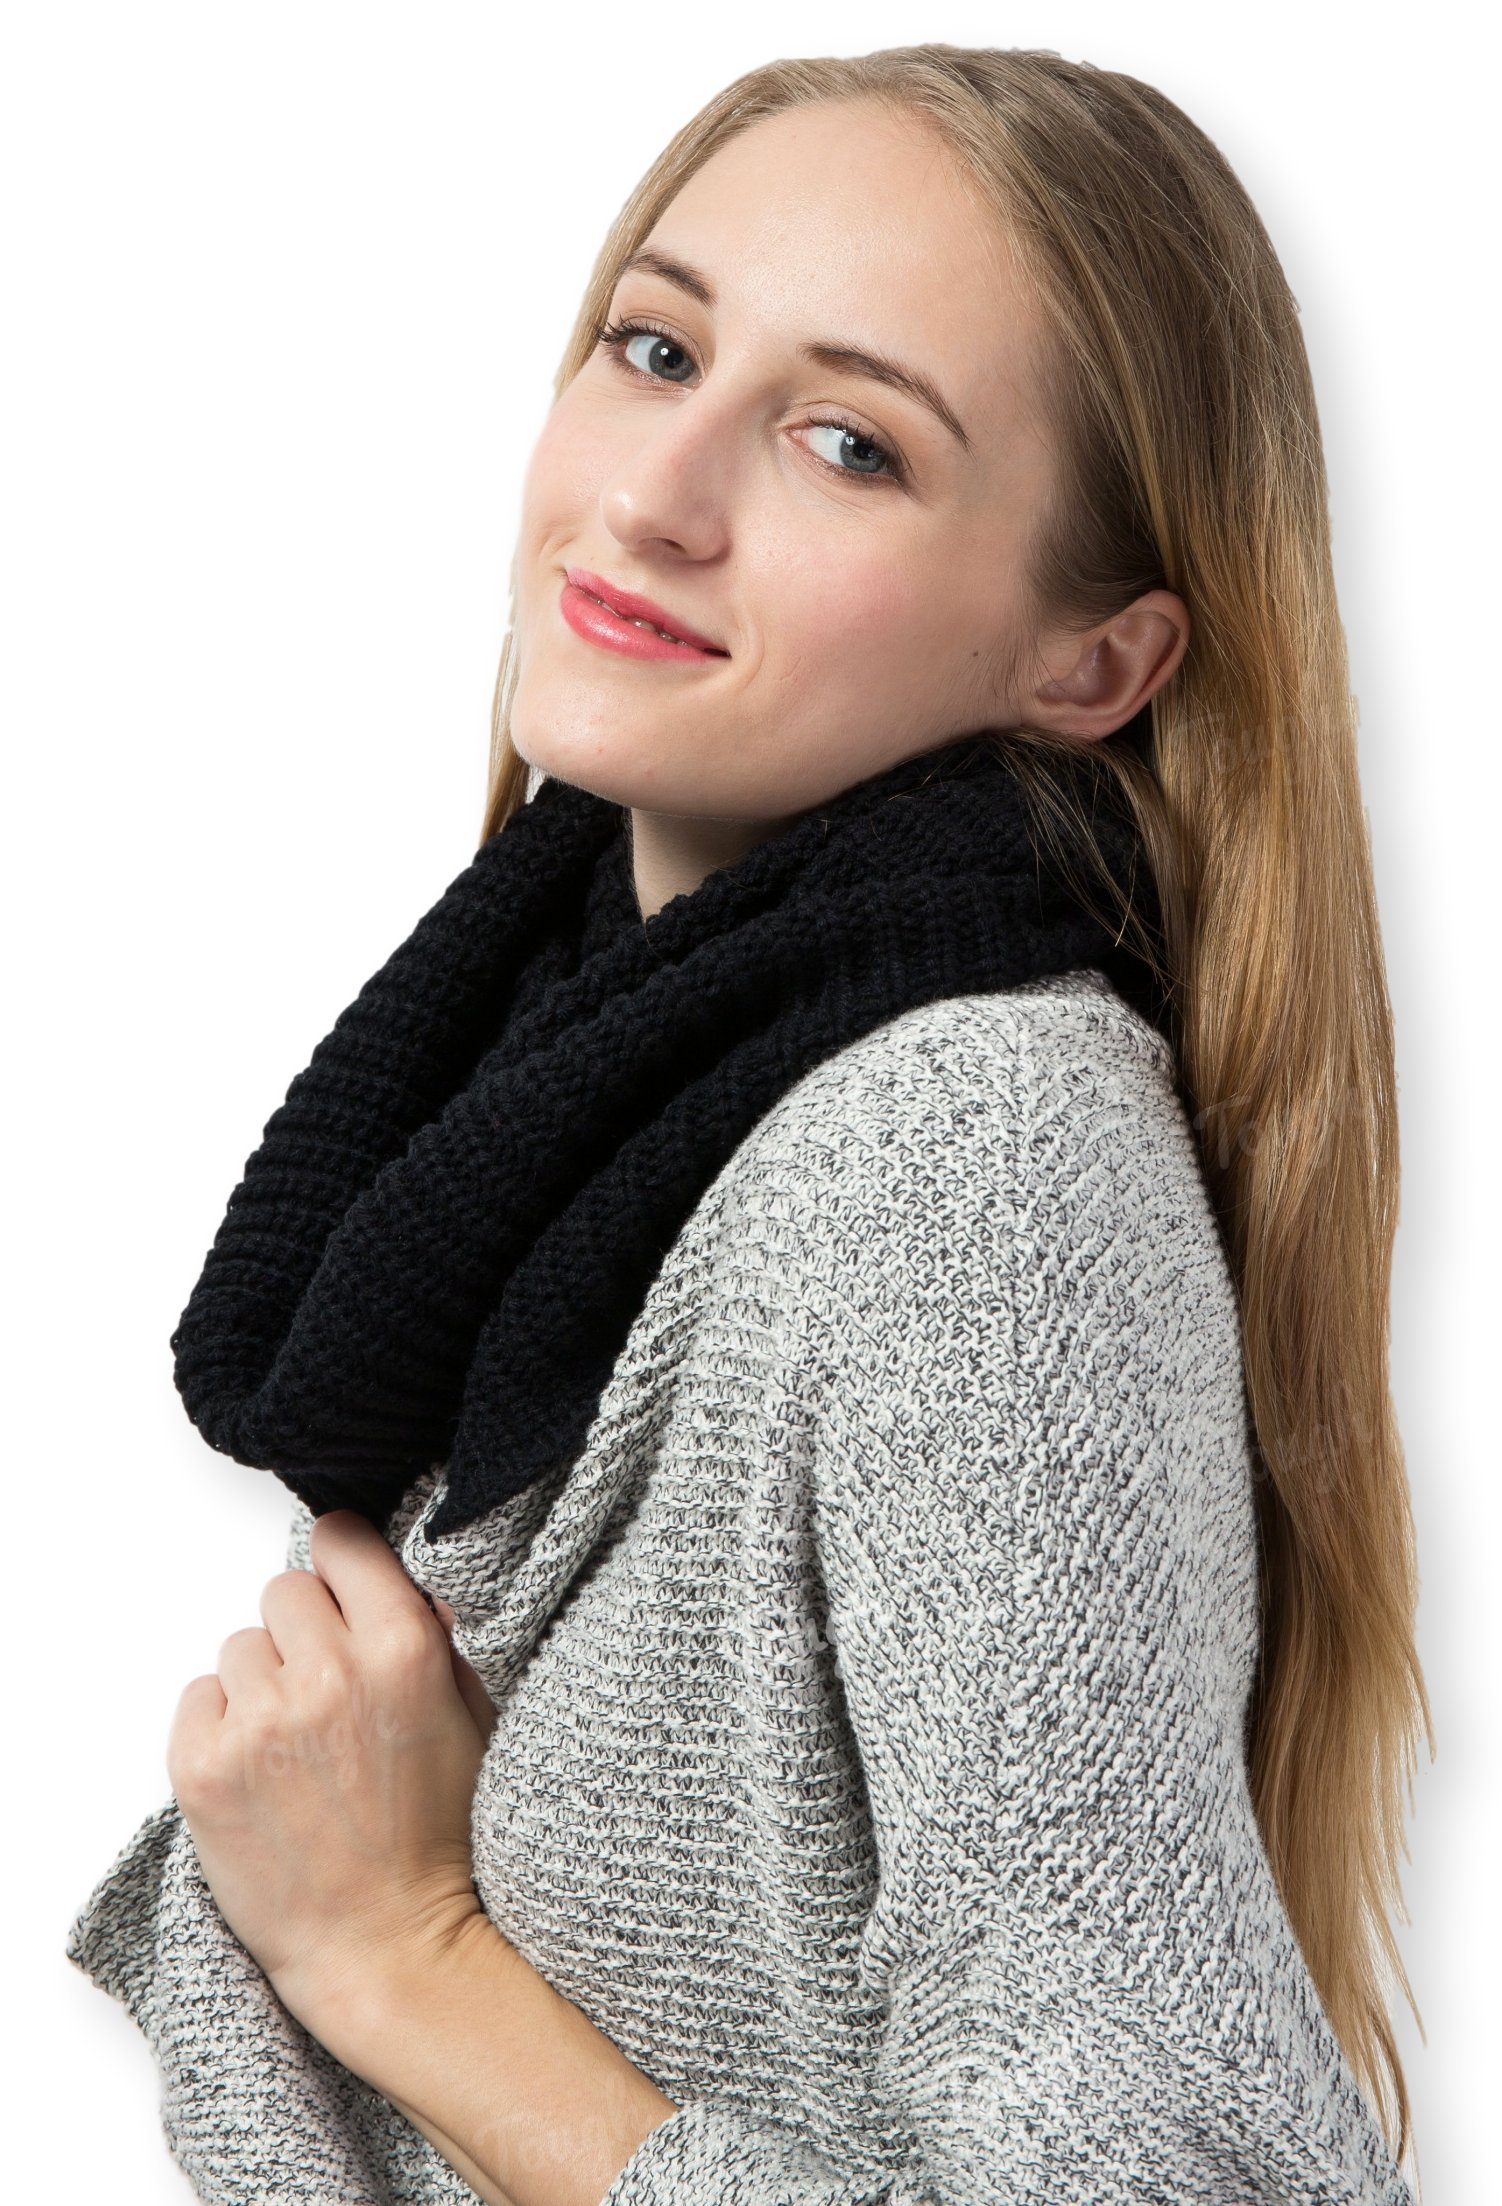 Thick Knit Winter Infinity Scarf by Tough Headwear - Stay Warm & Stylish Year Round - Circle Loop Scarves for Women & Men